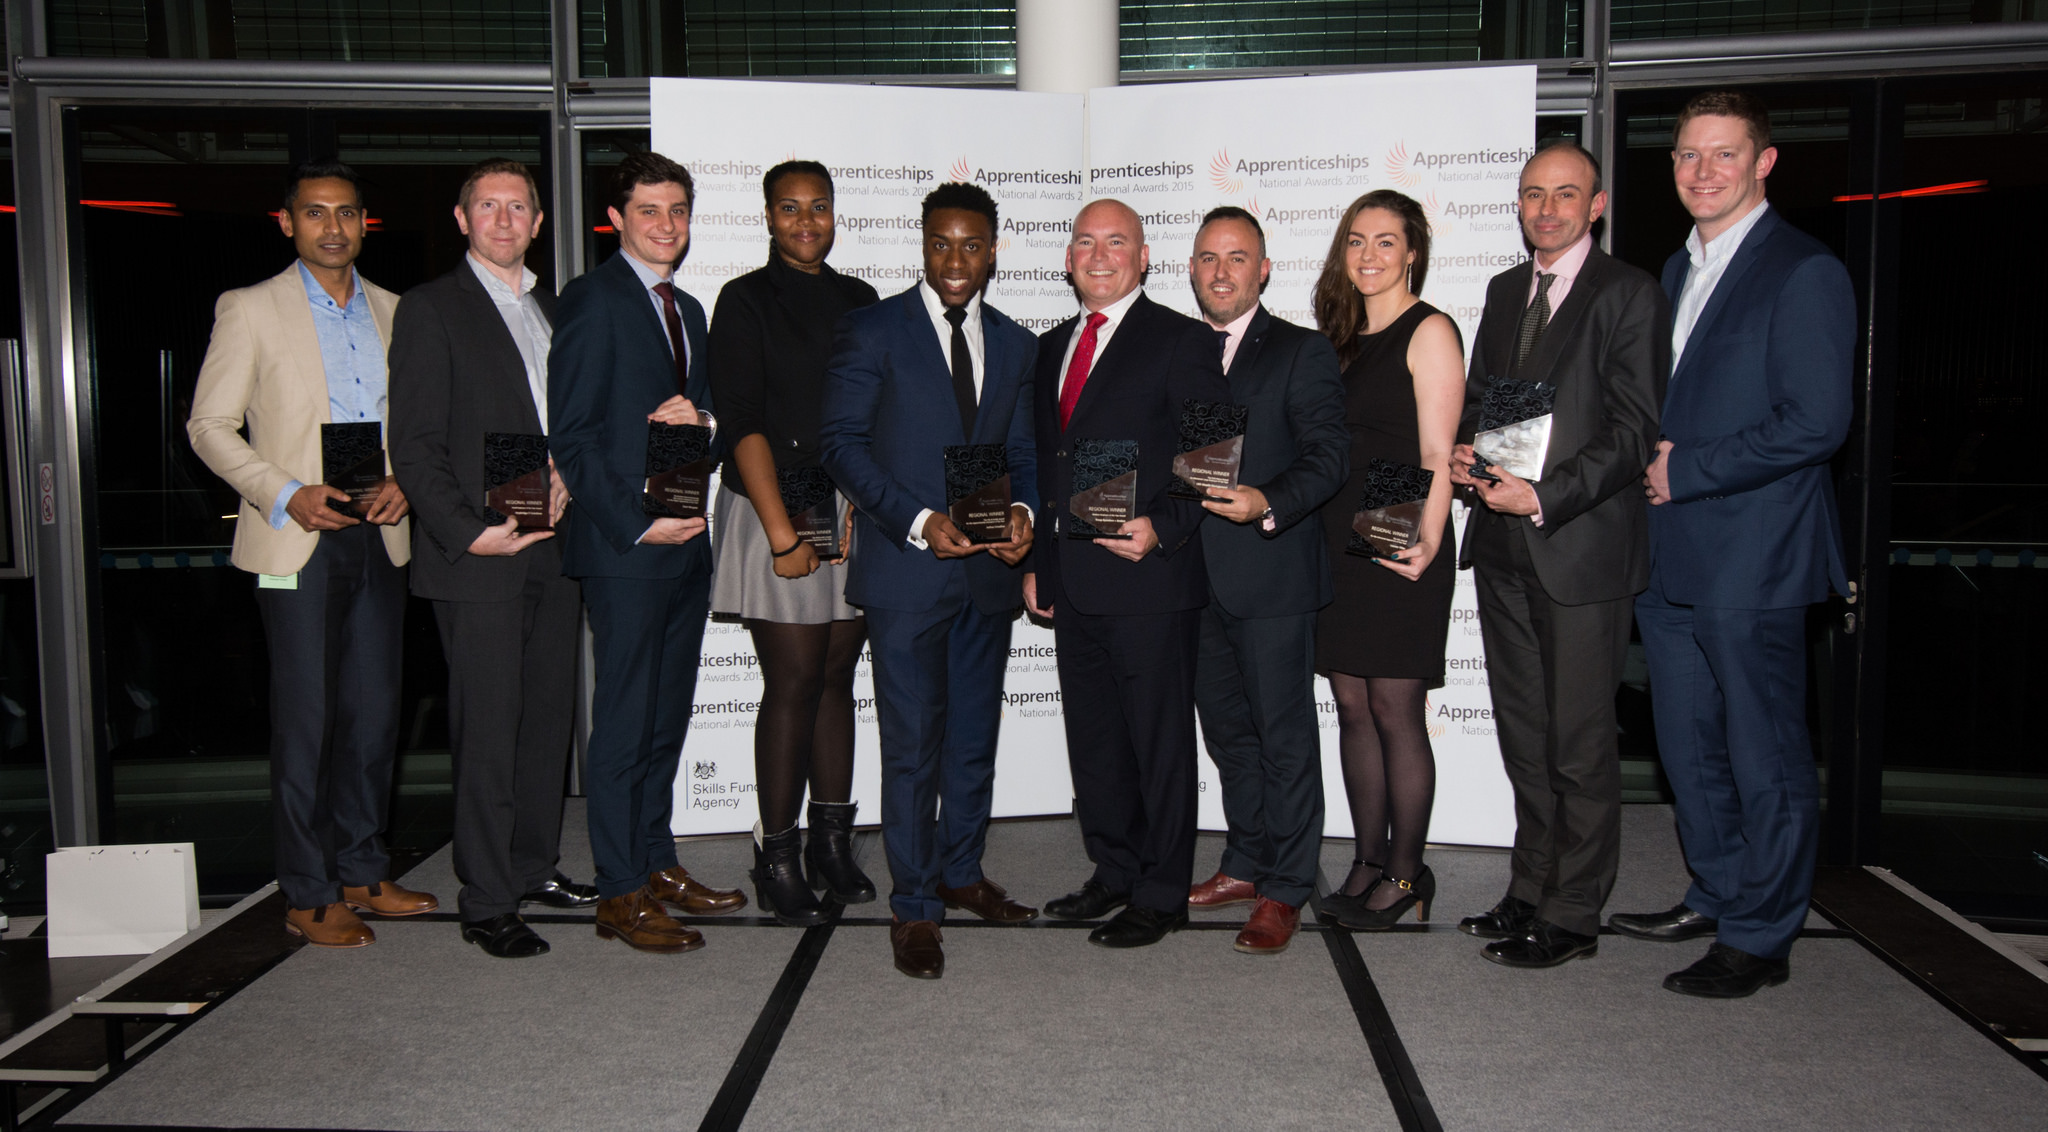 London winners group shot (L-R): Roy Ramrutton, Breyer; Andy Hinxman, Keybridge IT Solutions; Sean Norgate, level four, BT; Maria Dare-Ojo, level two, Compass Group; Joshue Uwadiae, eCourier; Terry Canty, Troupe Bywaters & Anders; Colin Neil, UBS; Lauren Tiller, level three, BT; Richard Hamer, BAE; Mark Donnelly,  BAE